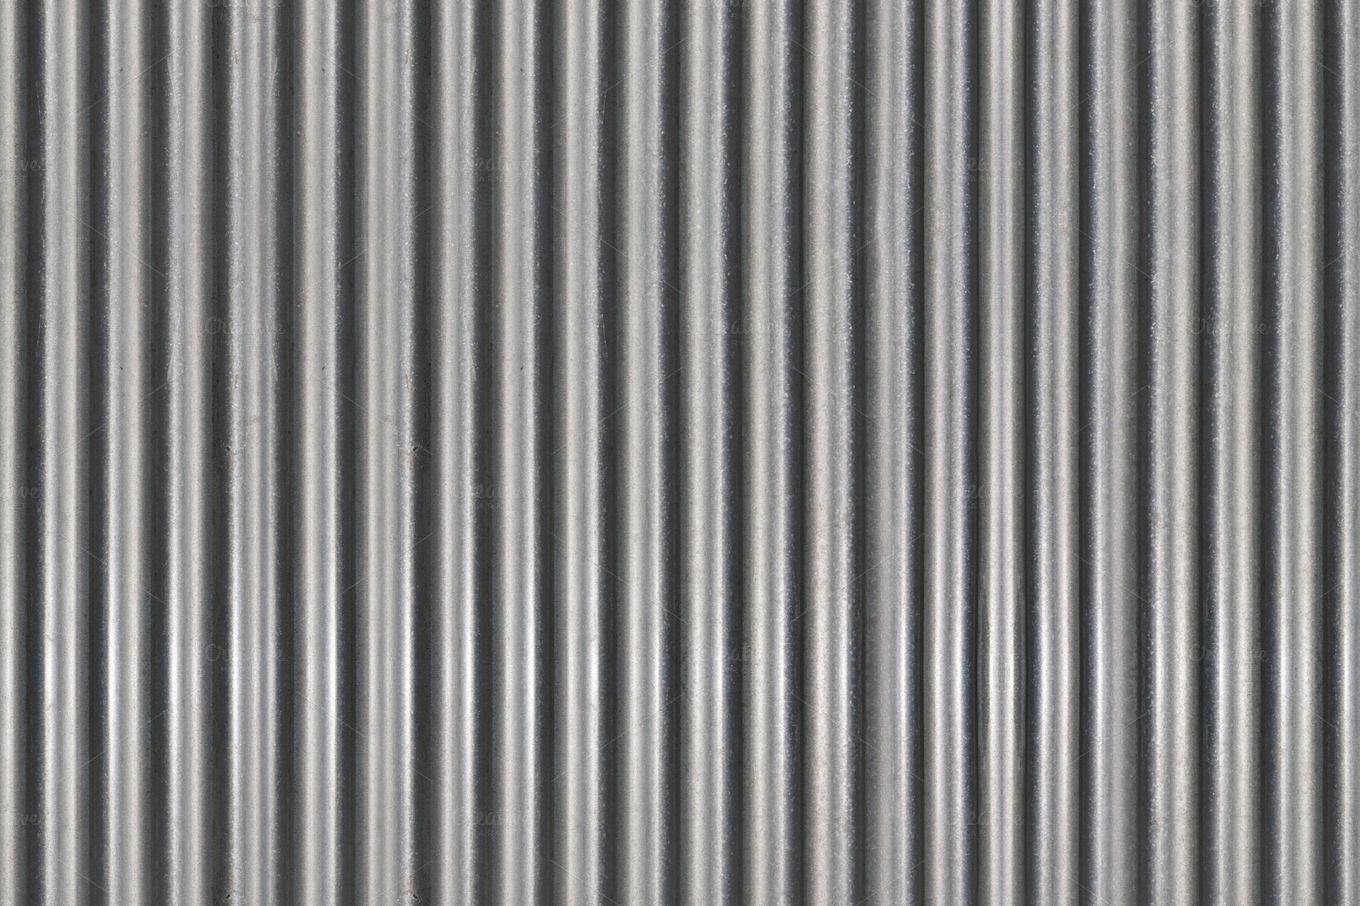 Corrugated Metal Google Search Concept 1 Materials